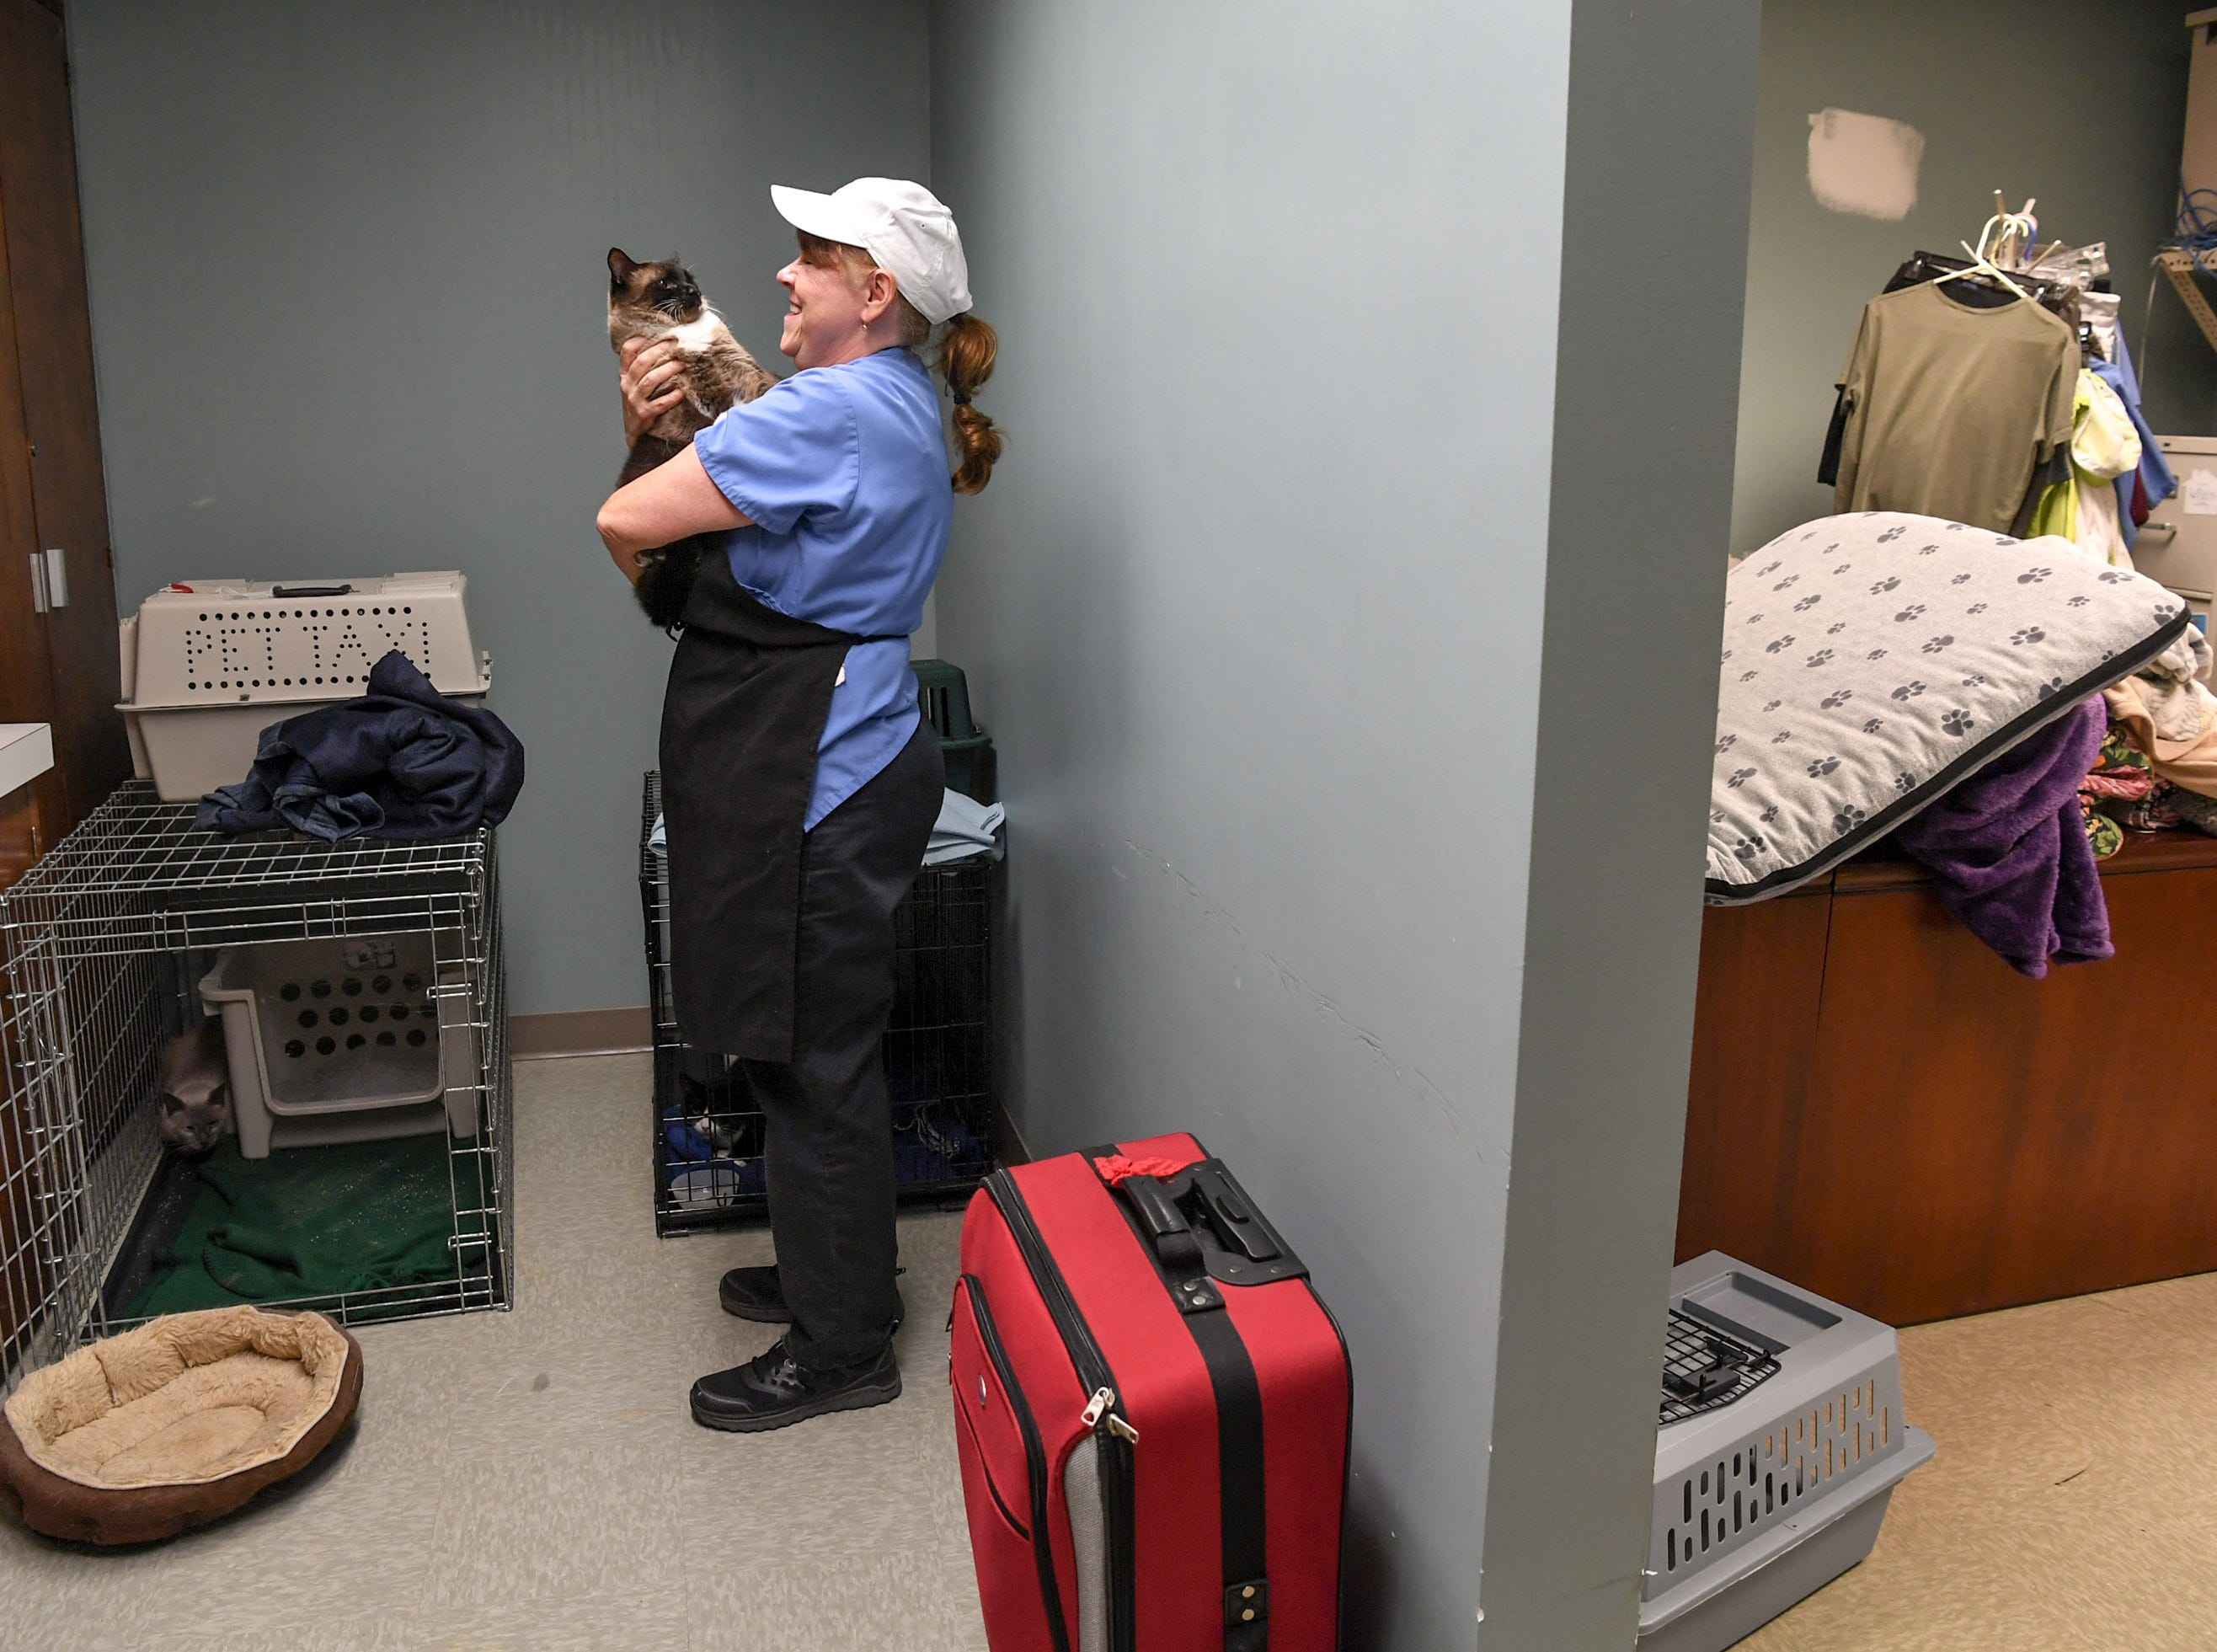 Andrea Zowalki holds her cat Chu Chu in a room she could sleep and keep her cat in during Hurricane Florence, at the Davis Community nursing home and assisted living facility in Wilmington, North Carolina on Thursday, September 13, 2018. (Ken Ruinard / Greenville News / Gannett USA Today Network / 2018 )